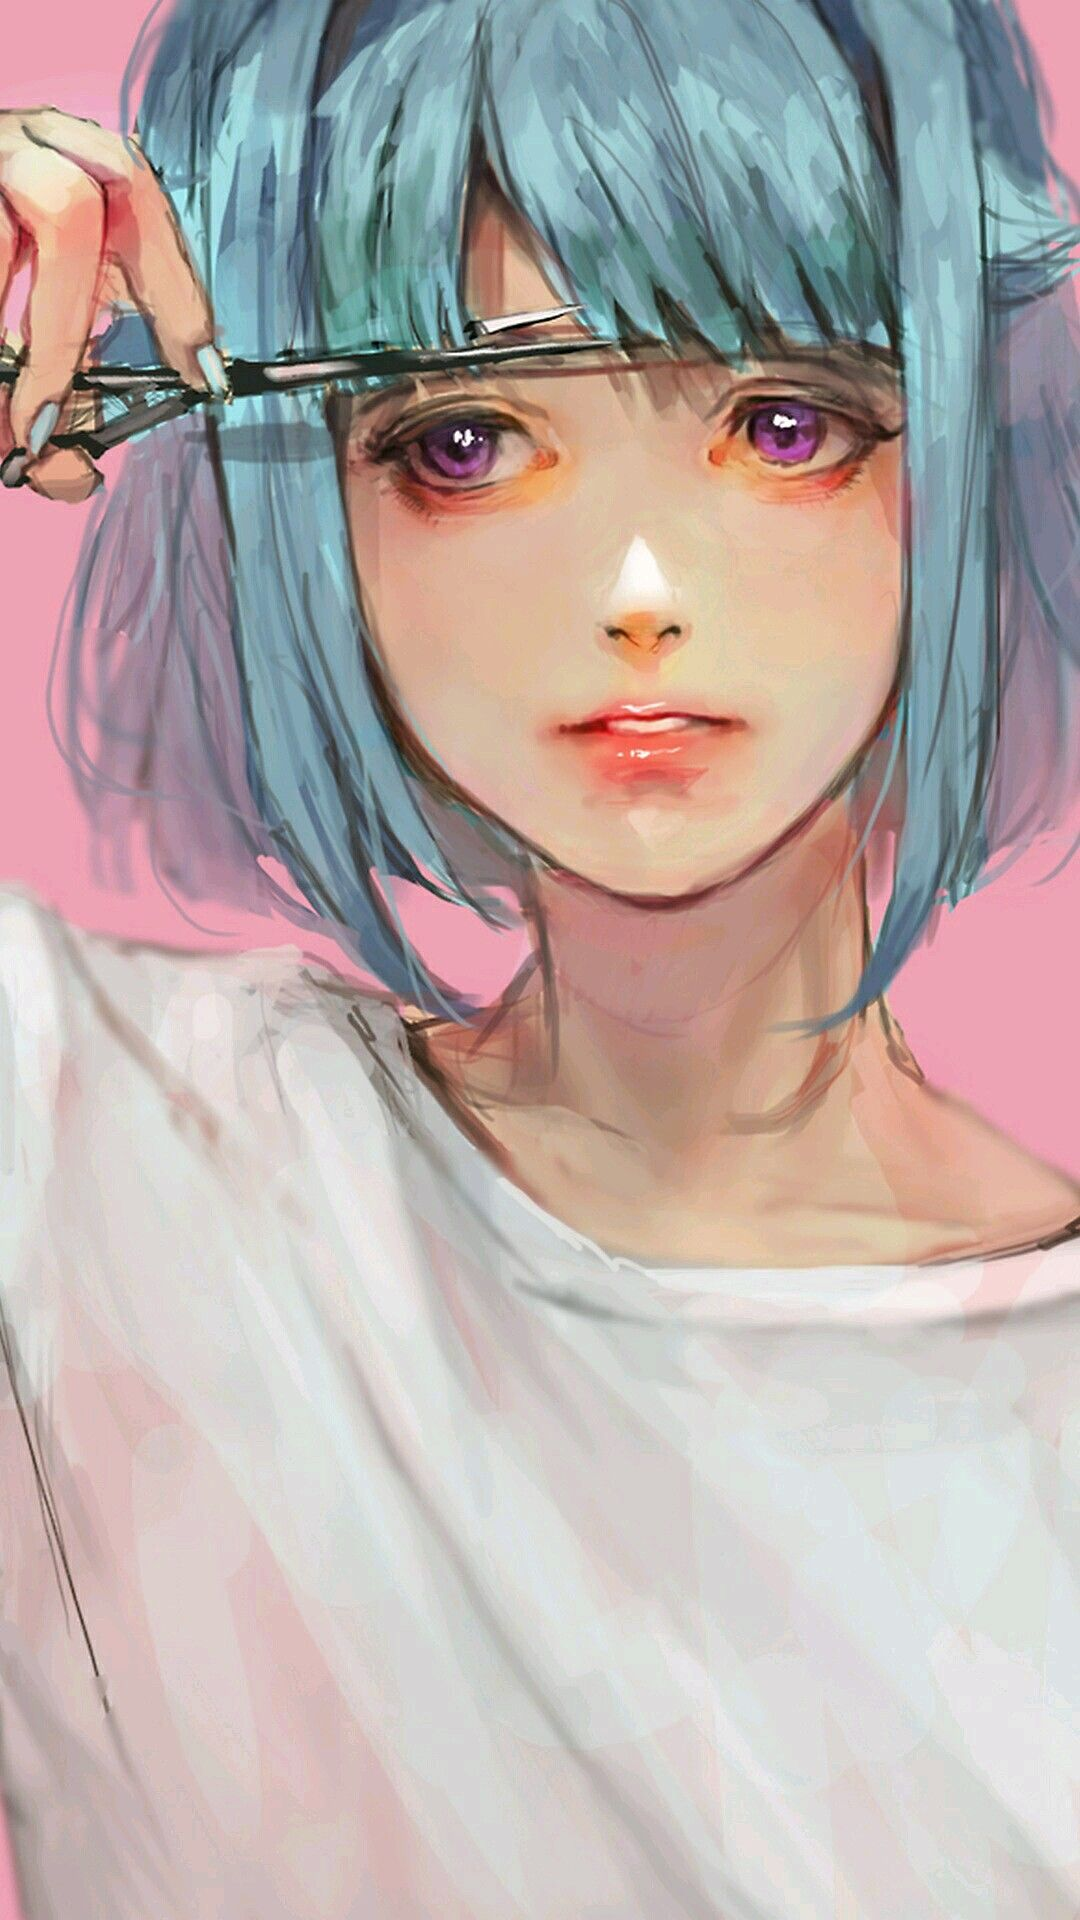 Pin by Emma on anime art Pinterest